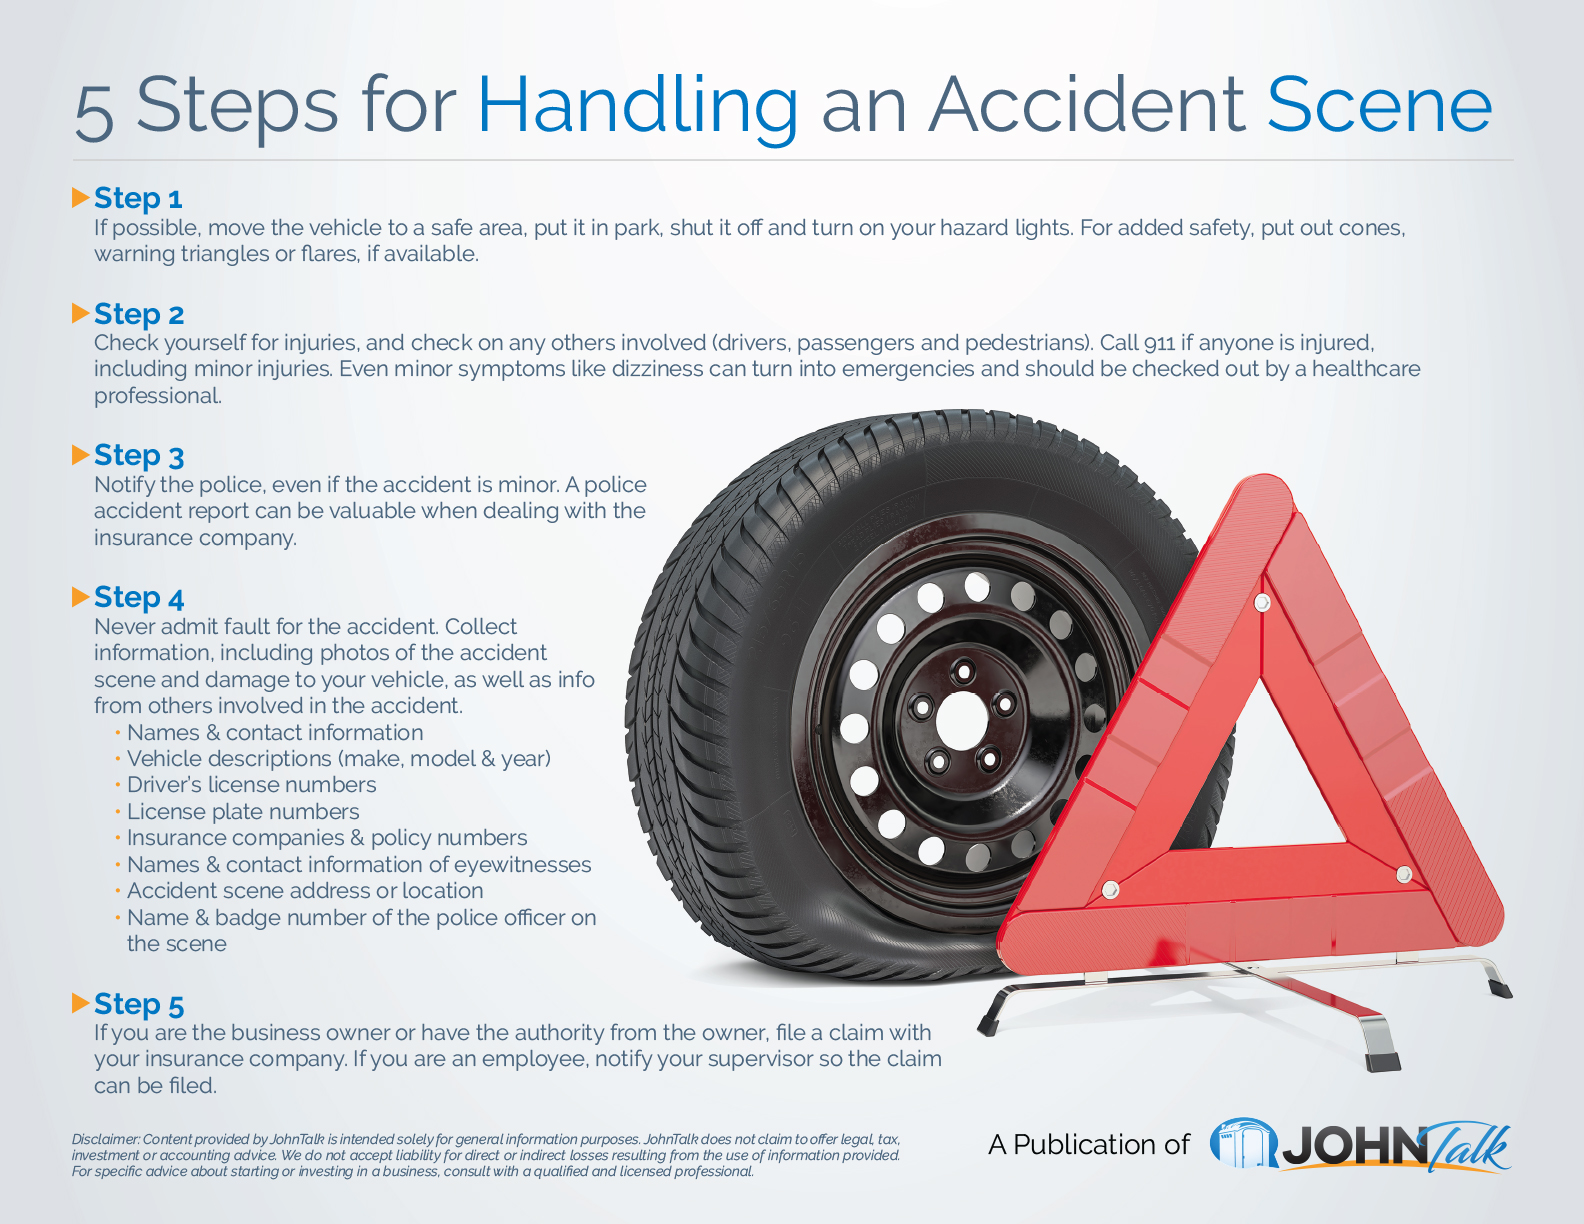 5 Steps for Handling an Accident Scene